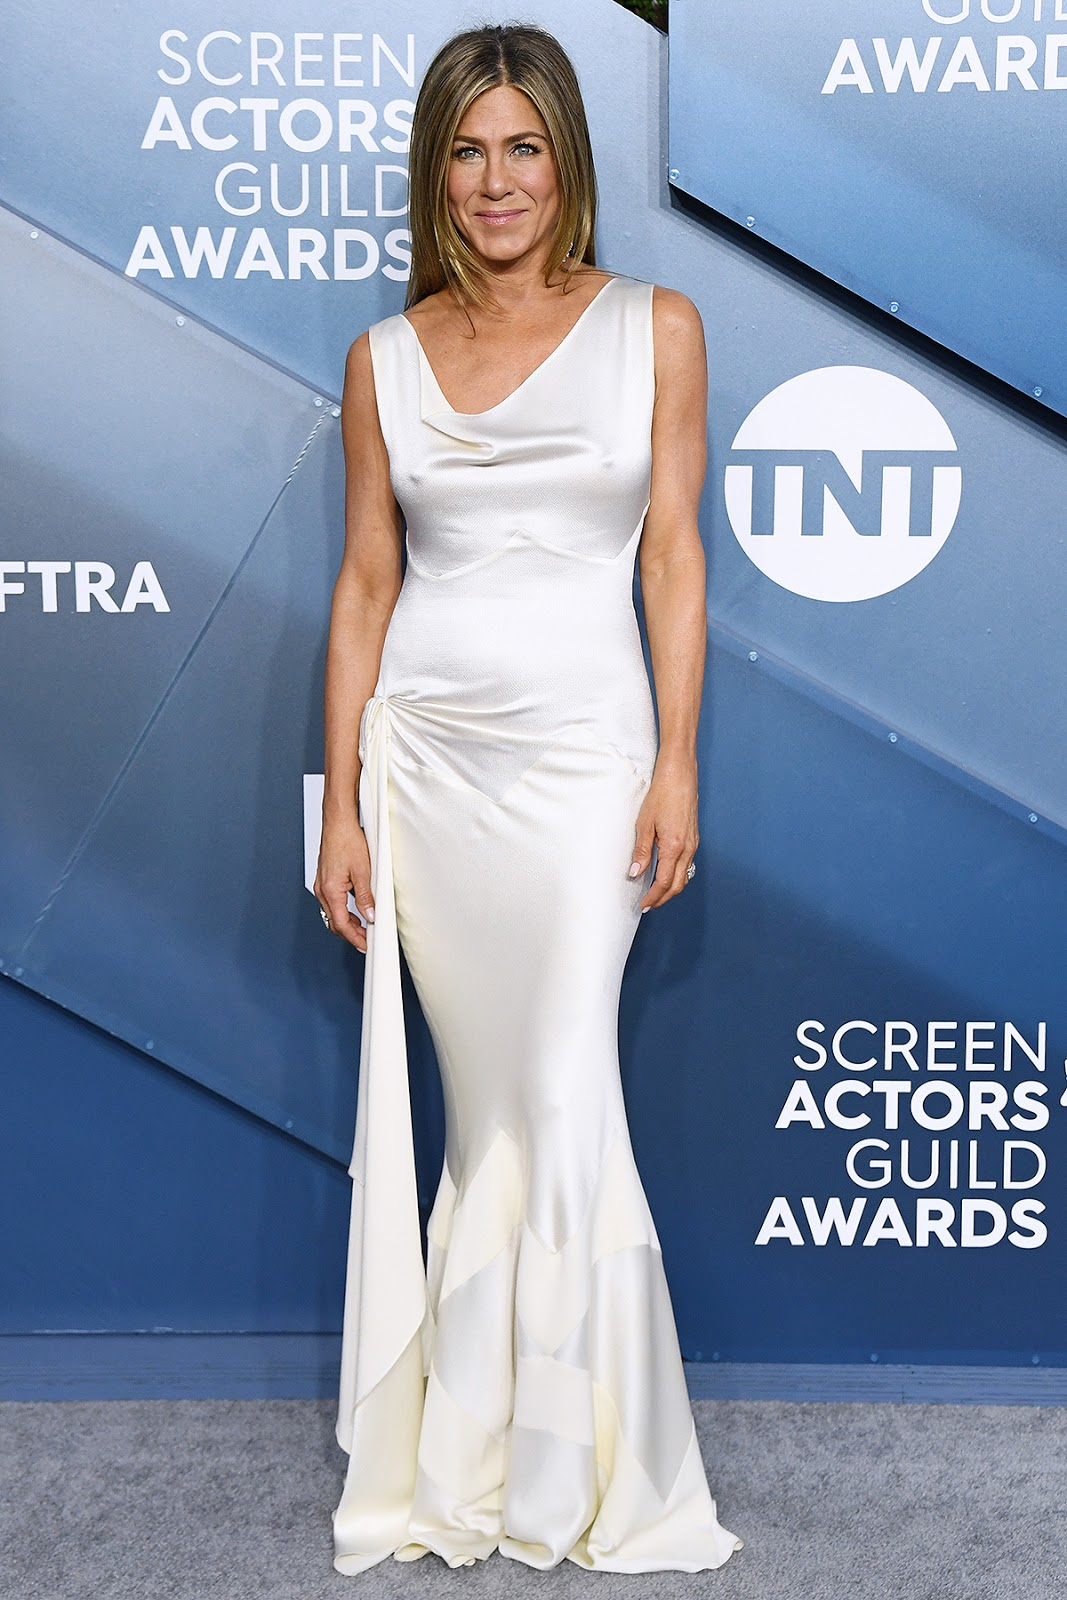 Jennifer Aniston drips glamour in slinky satin gown at the 2020 SAG Awards in LA